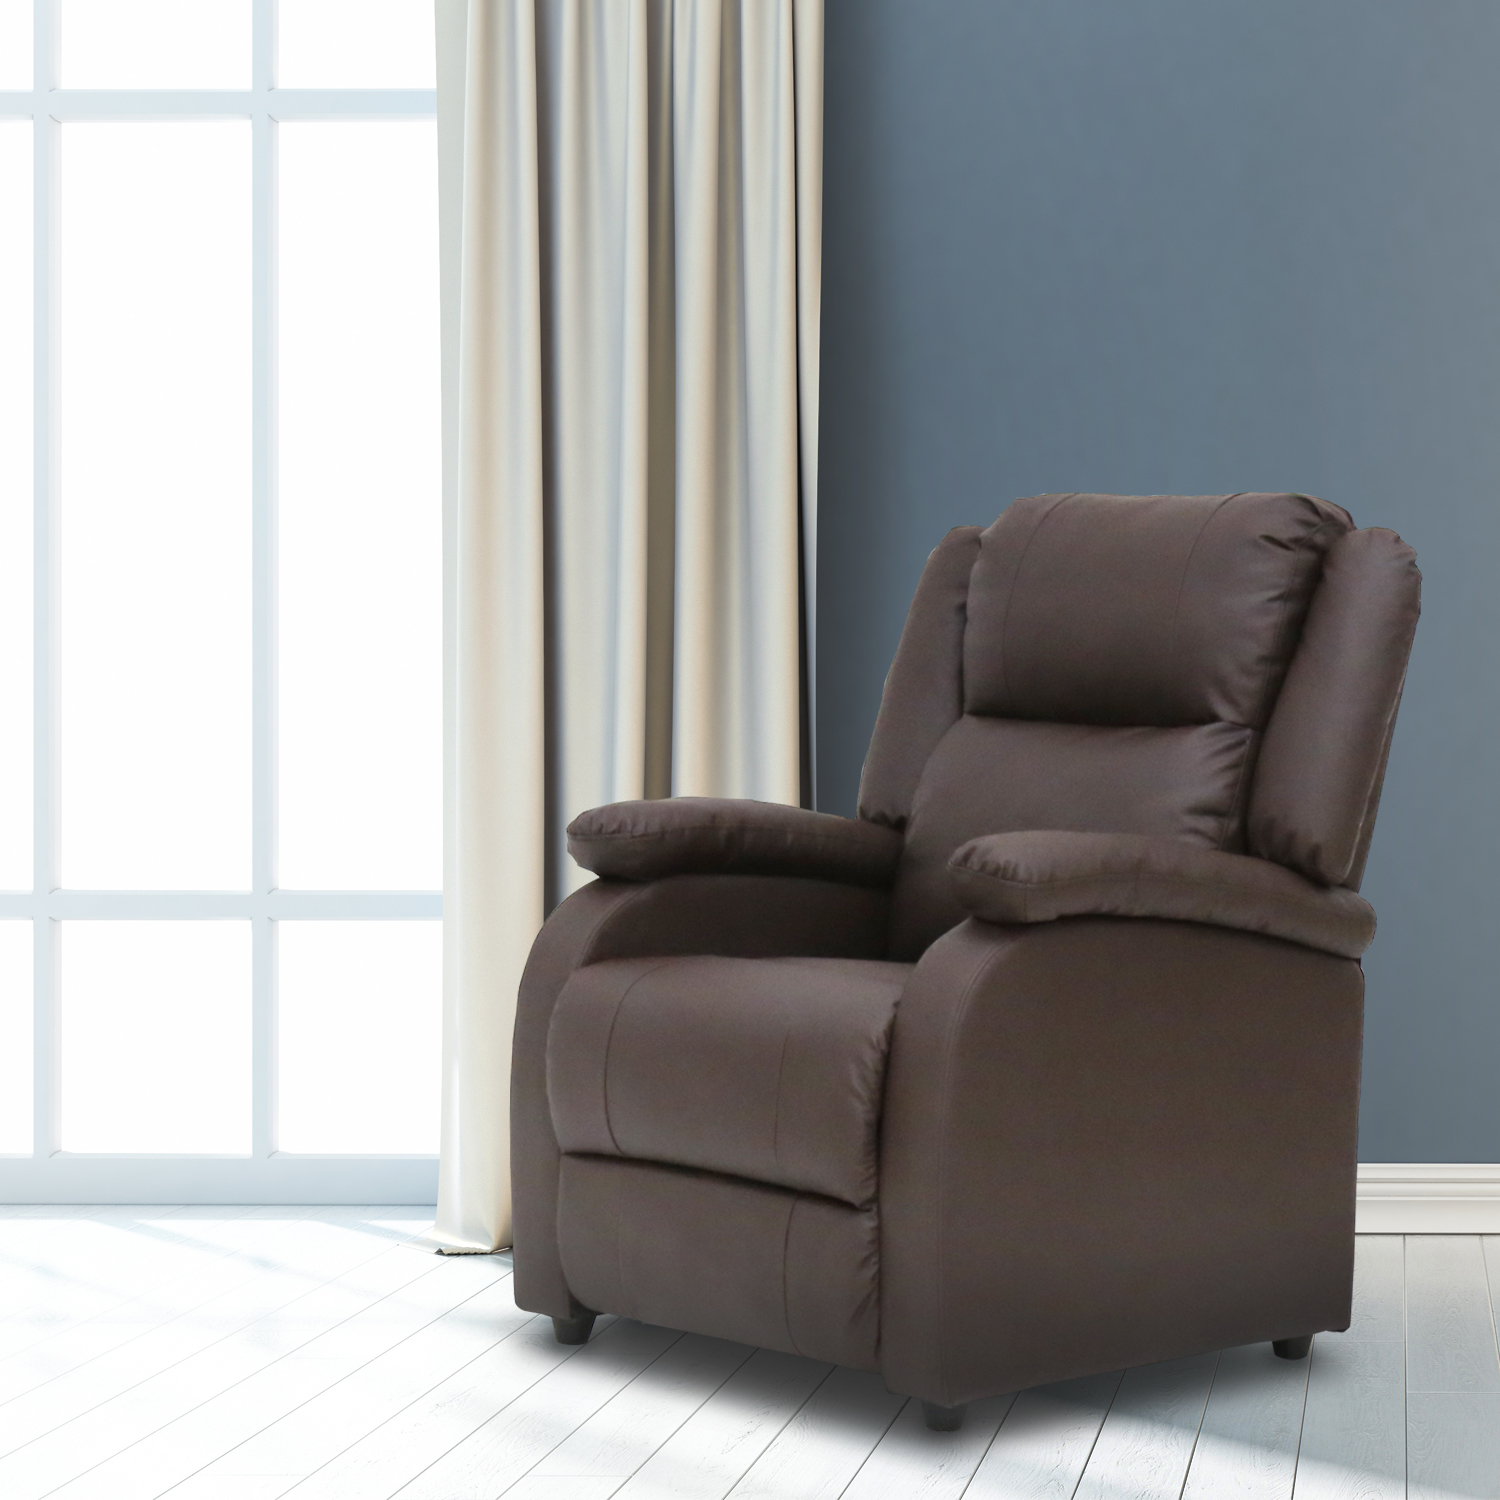 Kinbor Electric Massage Recliner Sofa Chair Heated Ergonomic Couch  W/Control Brown